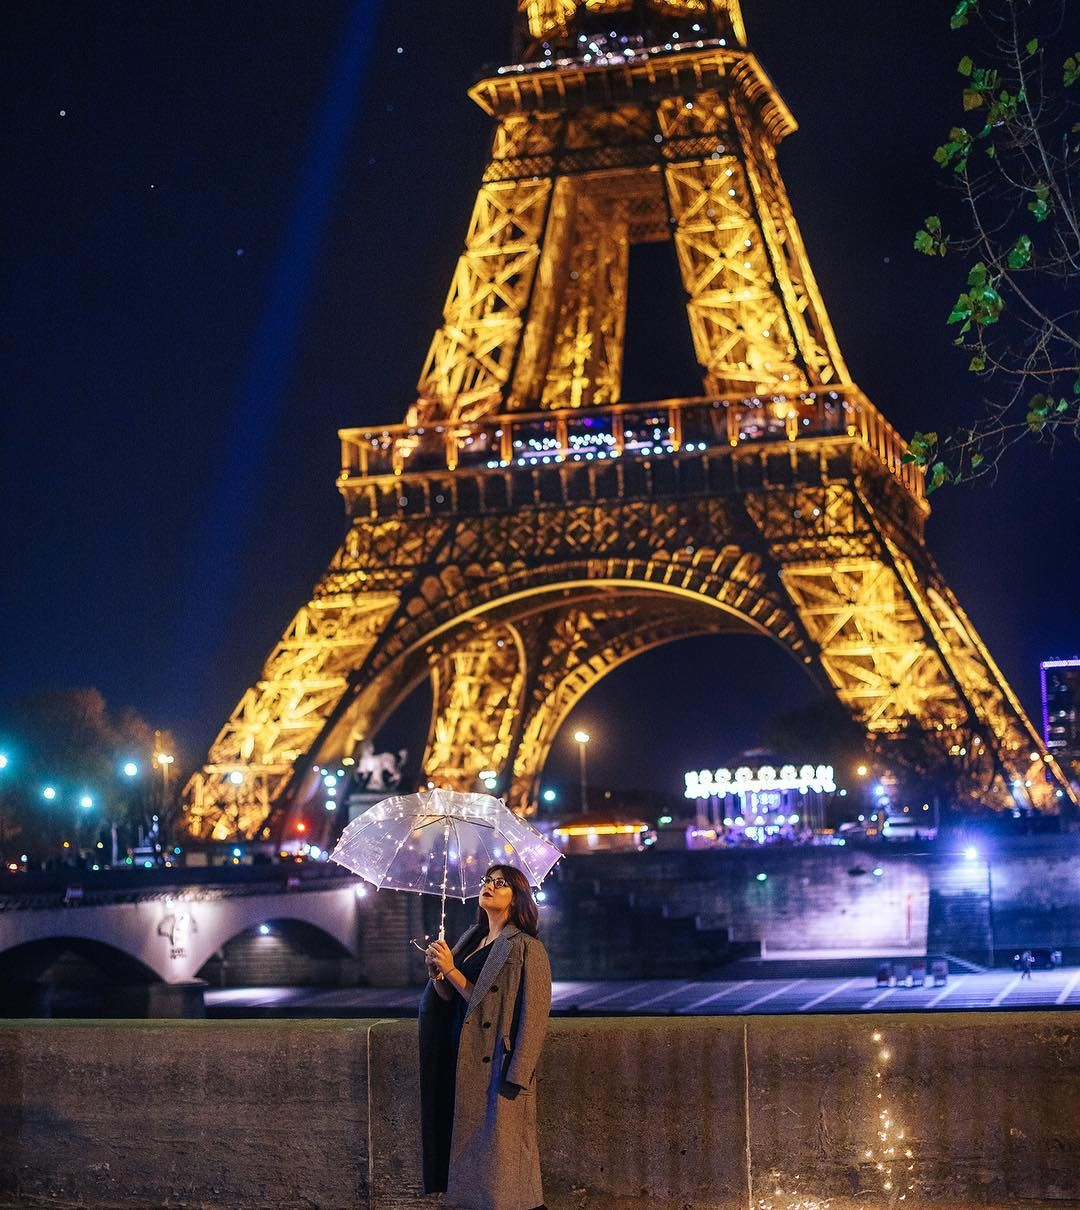 Night Eiffel Tower And Girl In Paris Photosession At Trocadero At Night Eiffel Tower Eiffel Tower At Night Paris Photos